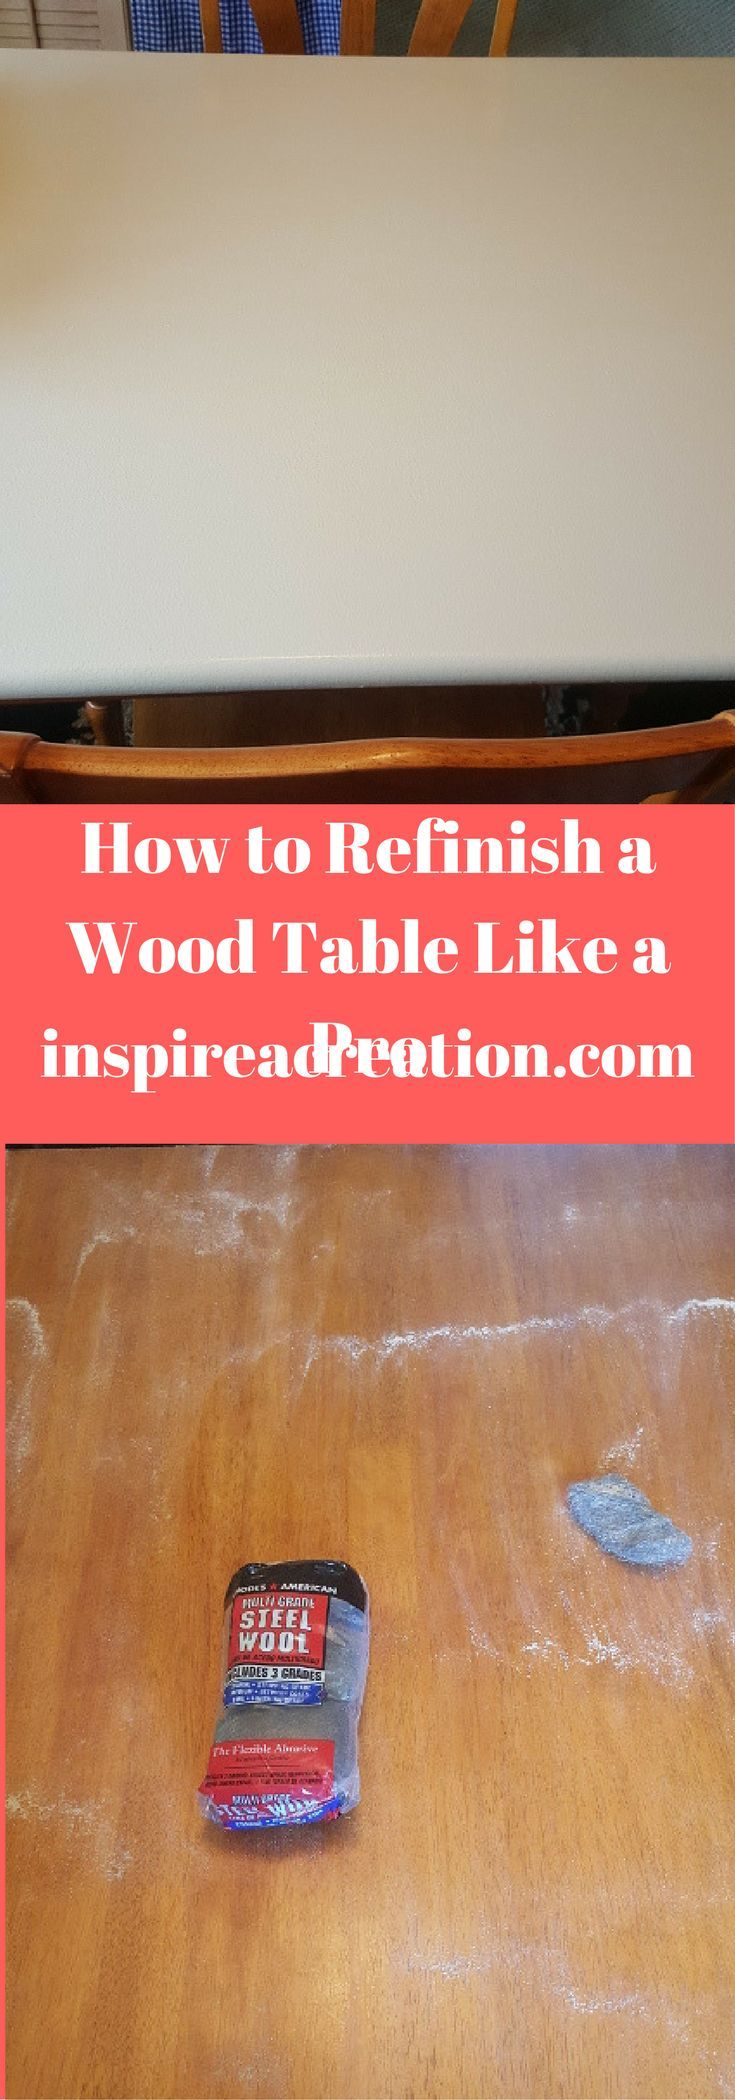 Get the tips and tricks to update your tired wooden table. #refinish #wood #table #diy